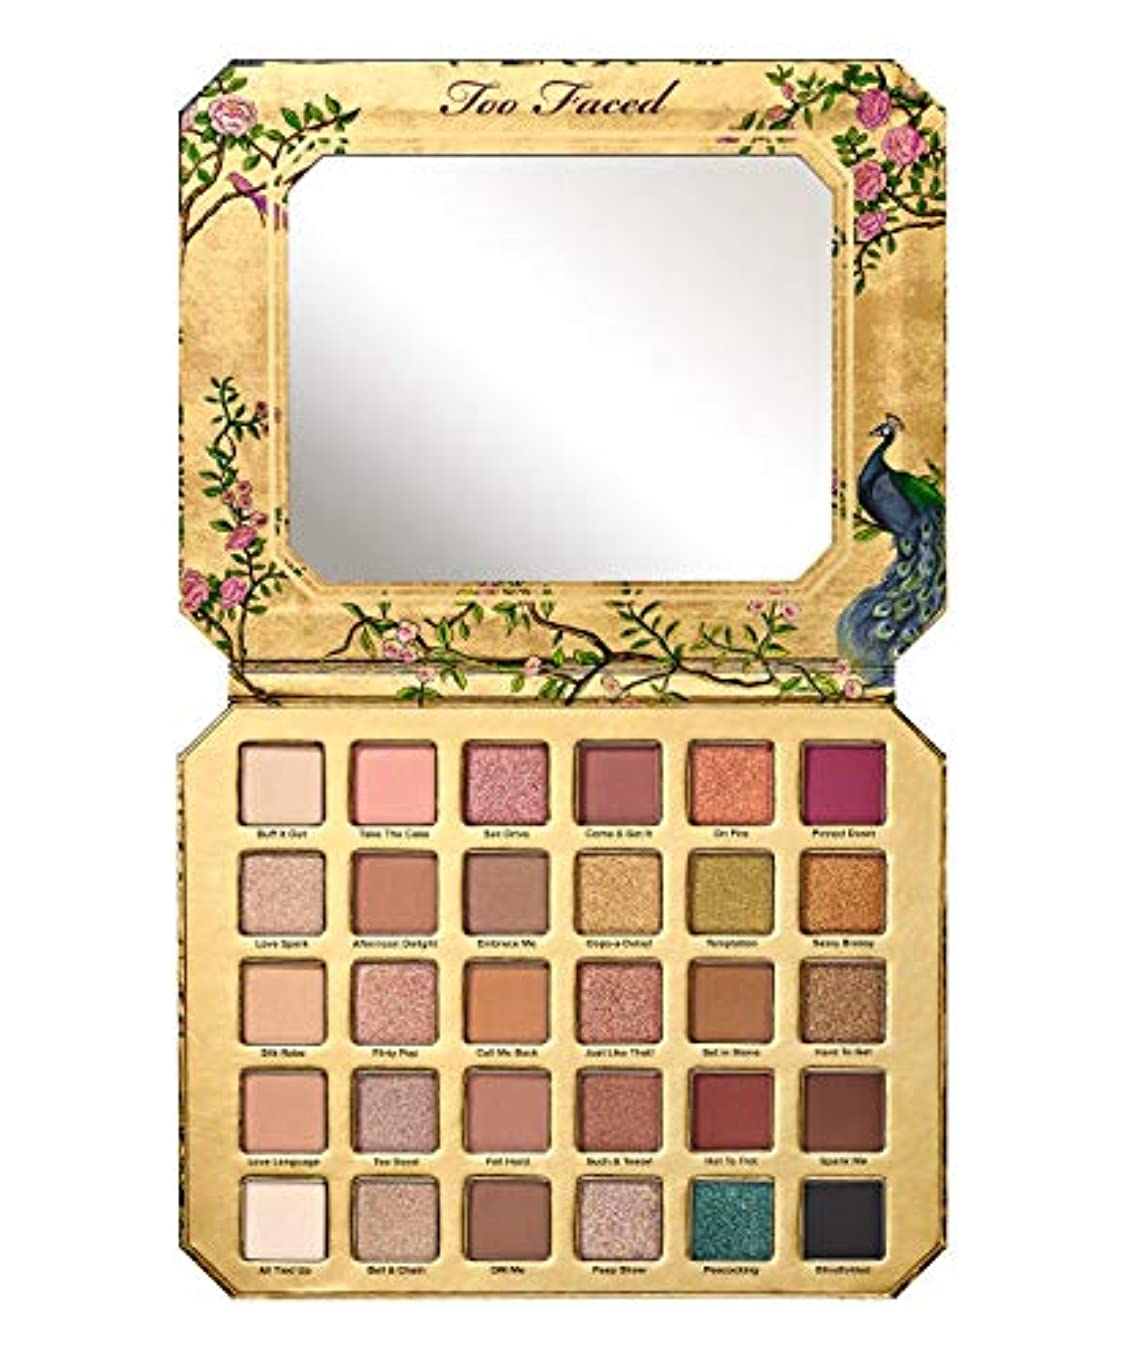 絶妙拡声器冷蔵庫Too Faced Natural Lust Eye Shadow Palette+ FREE Sample